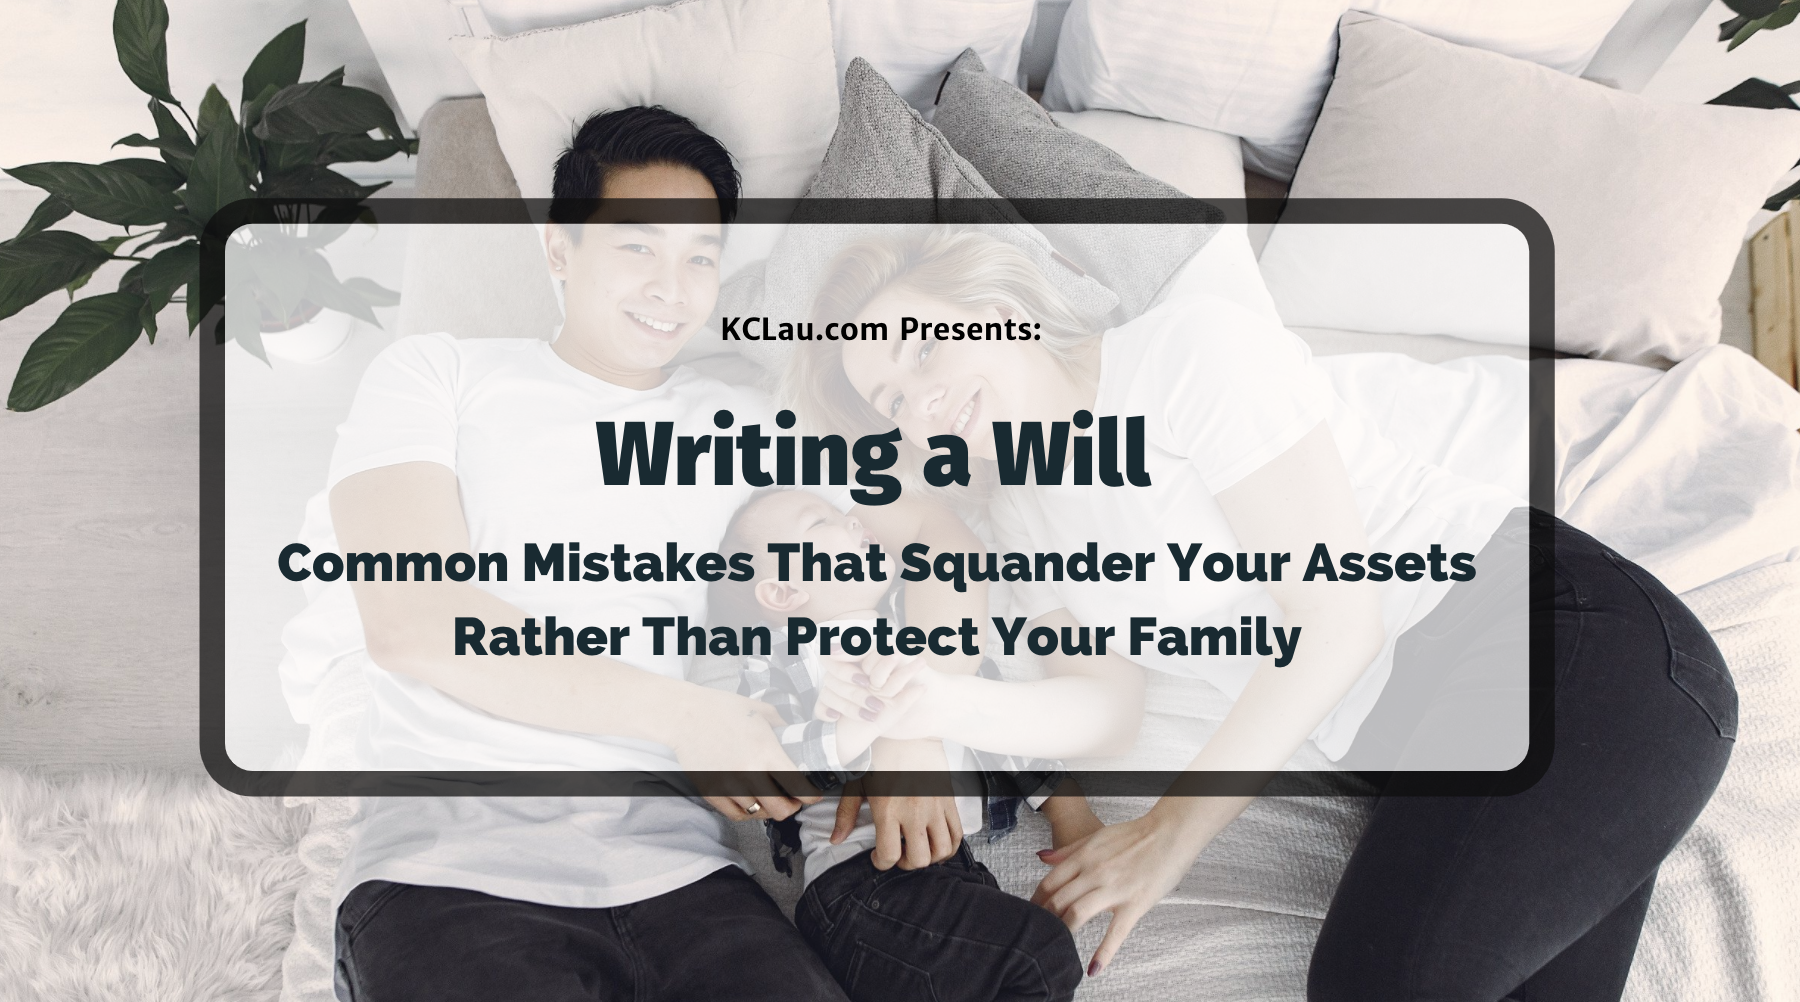 Writing a Will: Common Mistakes That Squander Your Assets Rather Than Protect Your Family